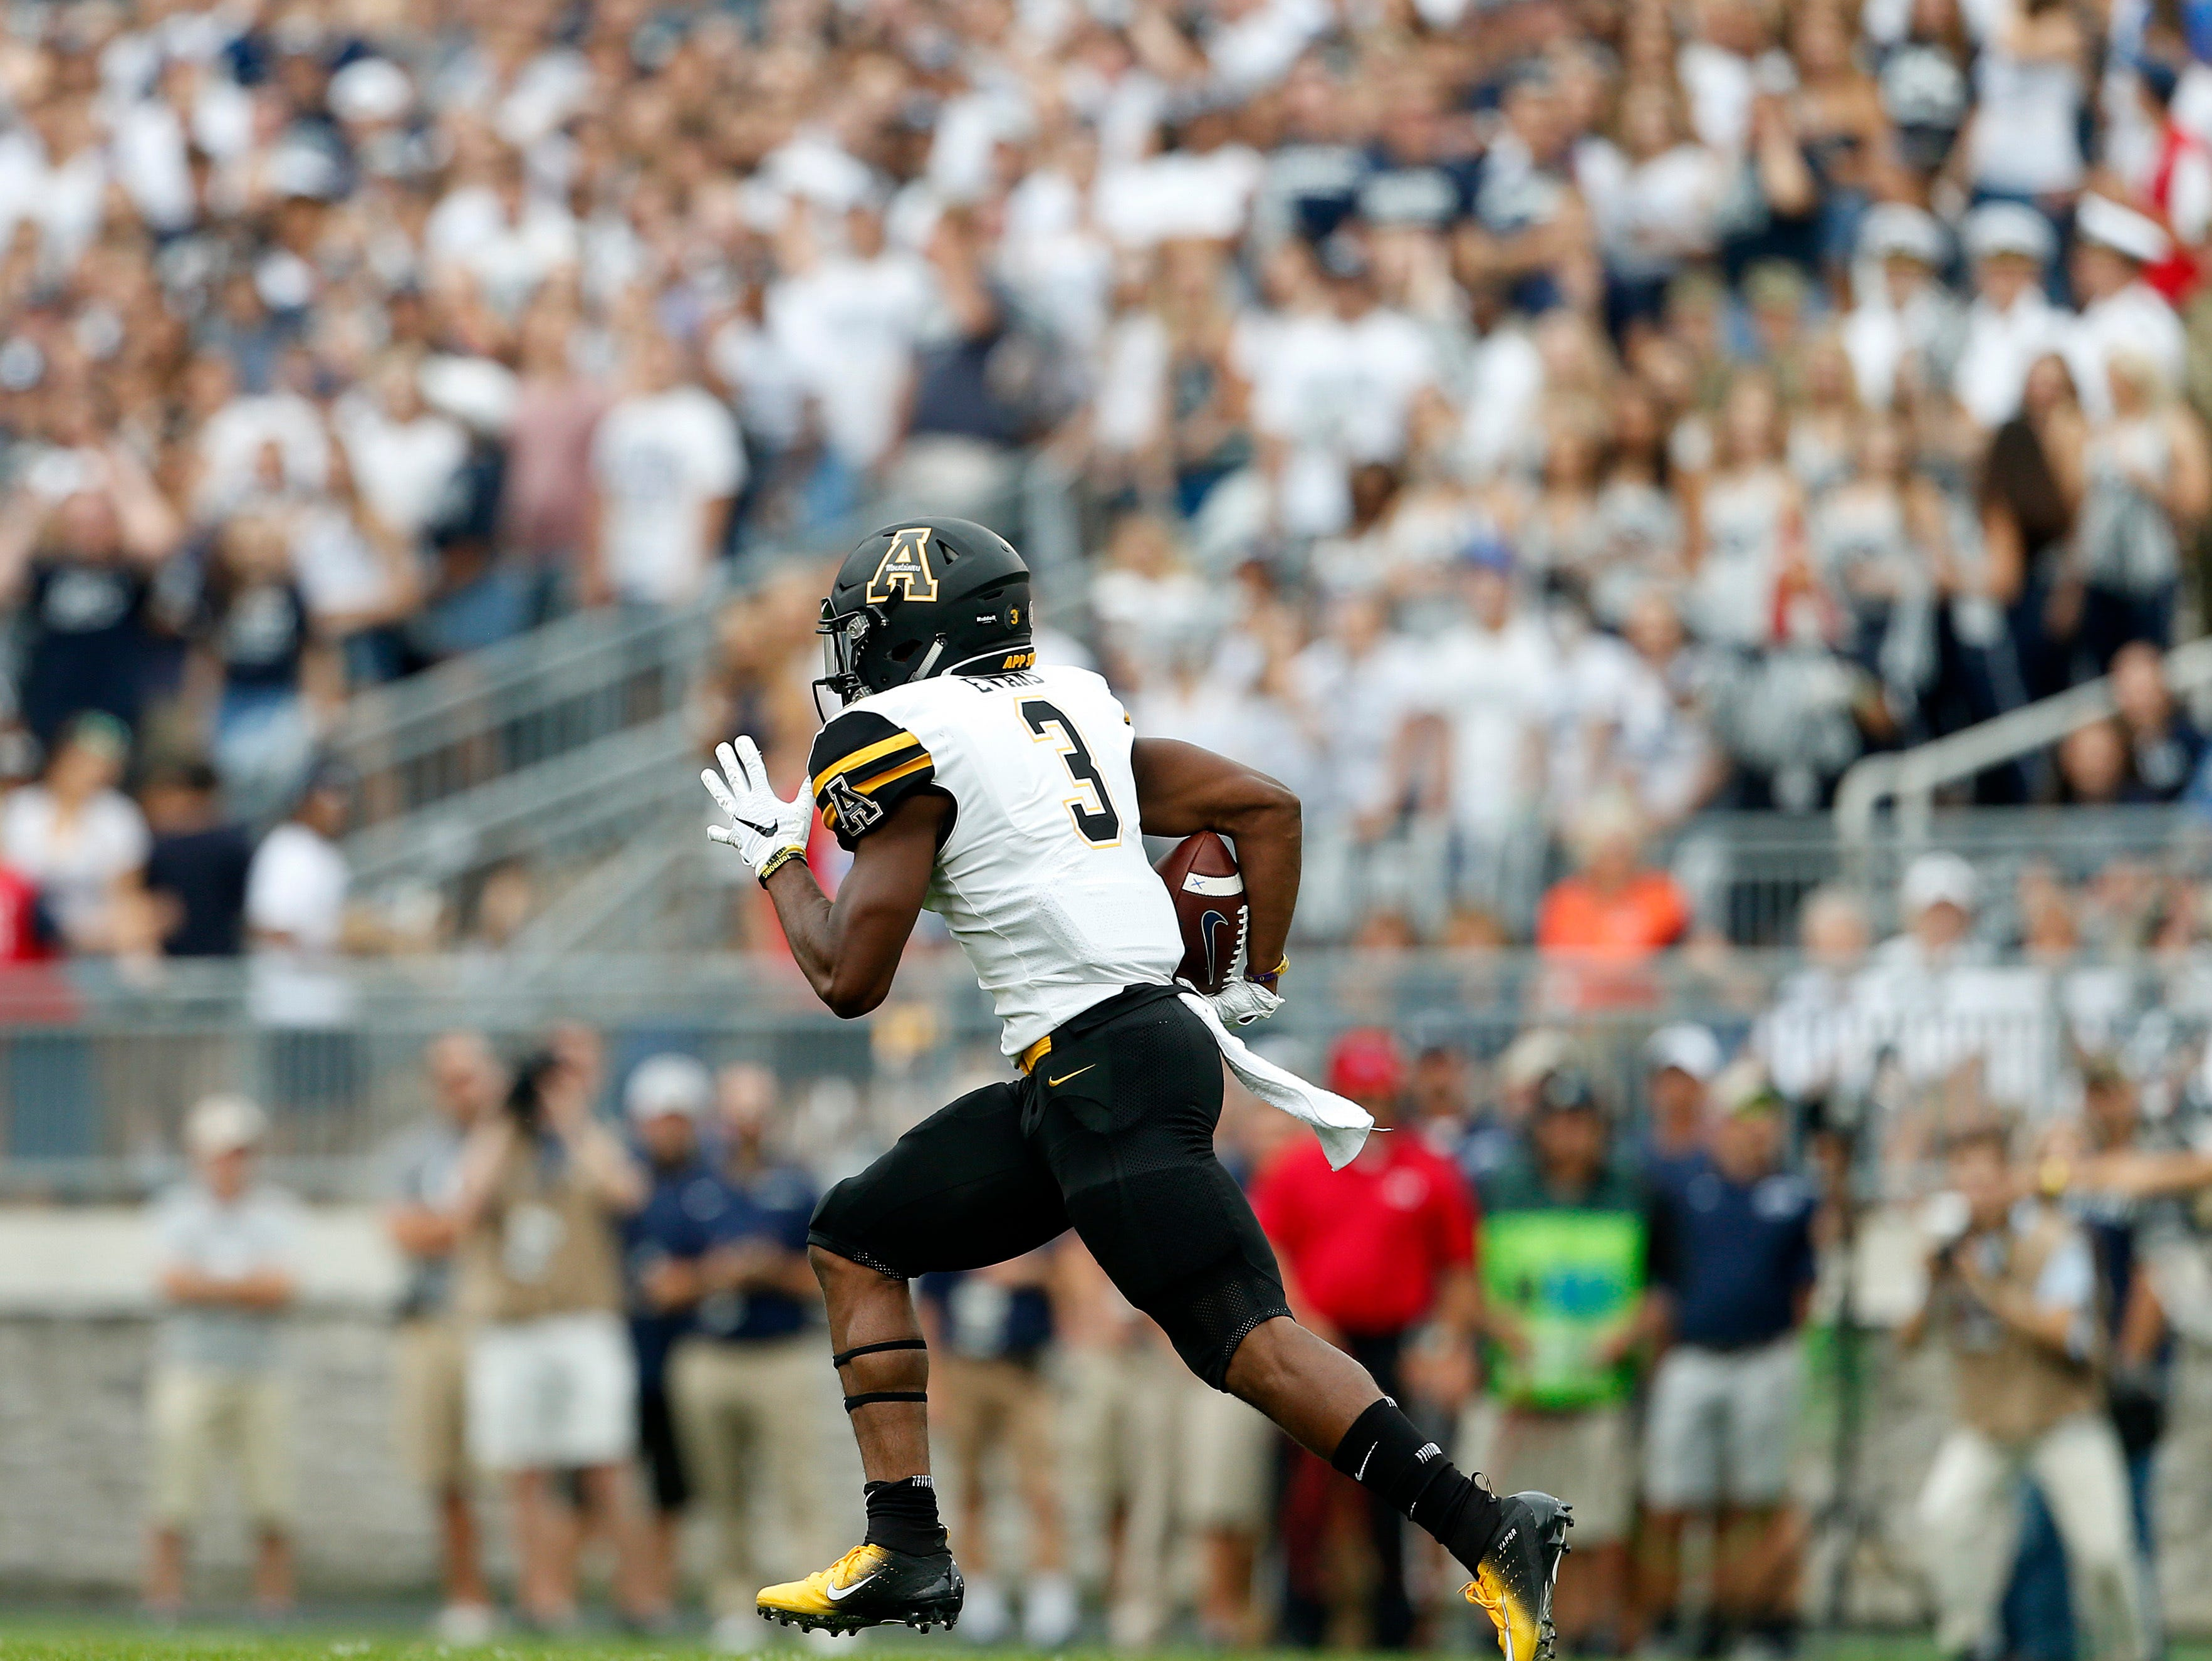 Appalachian State's Clifton Duck (4) runs back a kick for a 100 yards against Penn State during the first half of an NCAA college football game in State College, Pa., Saturday, Sept. 1, 2018. (AP Photo/Chris Knight)